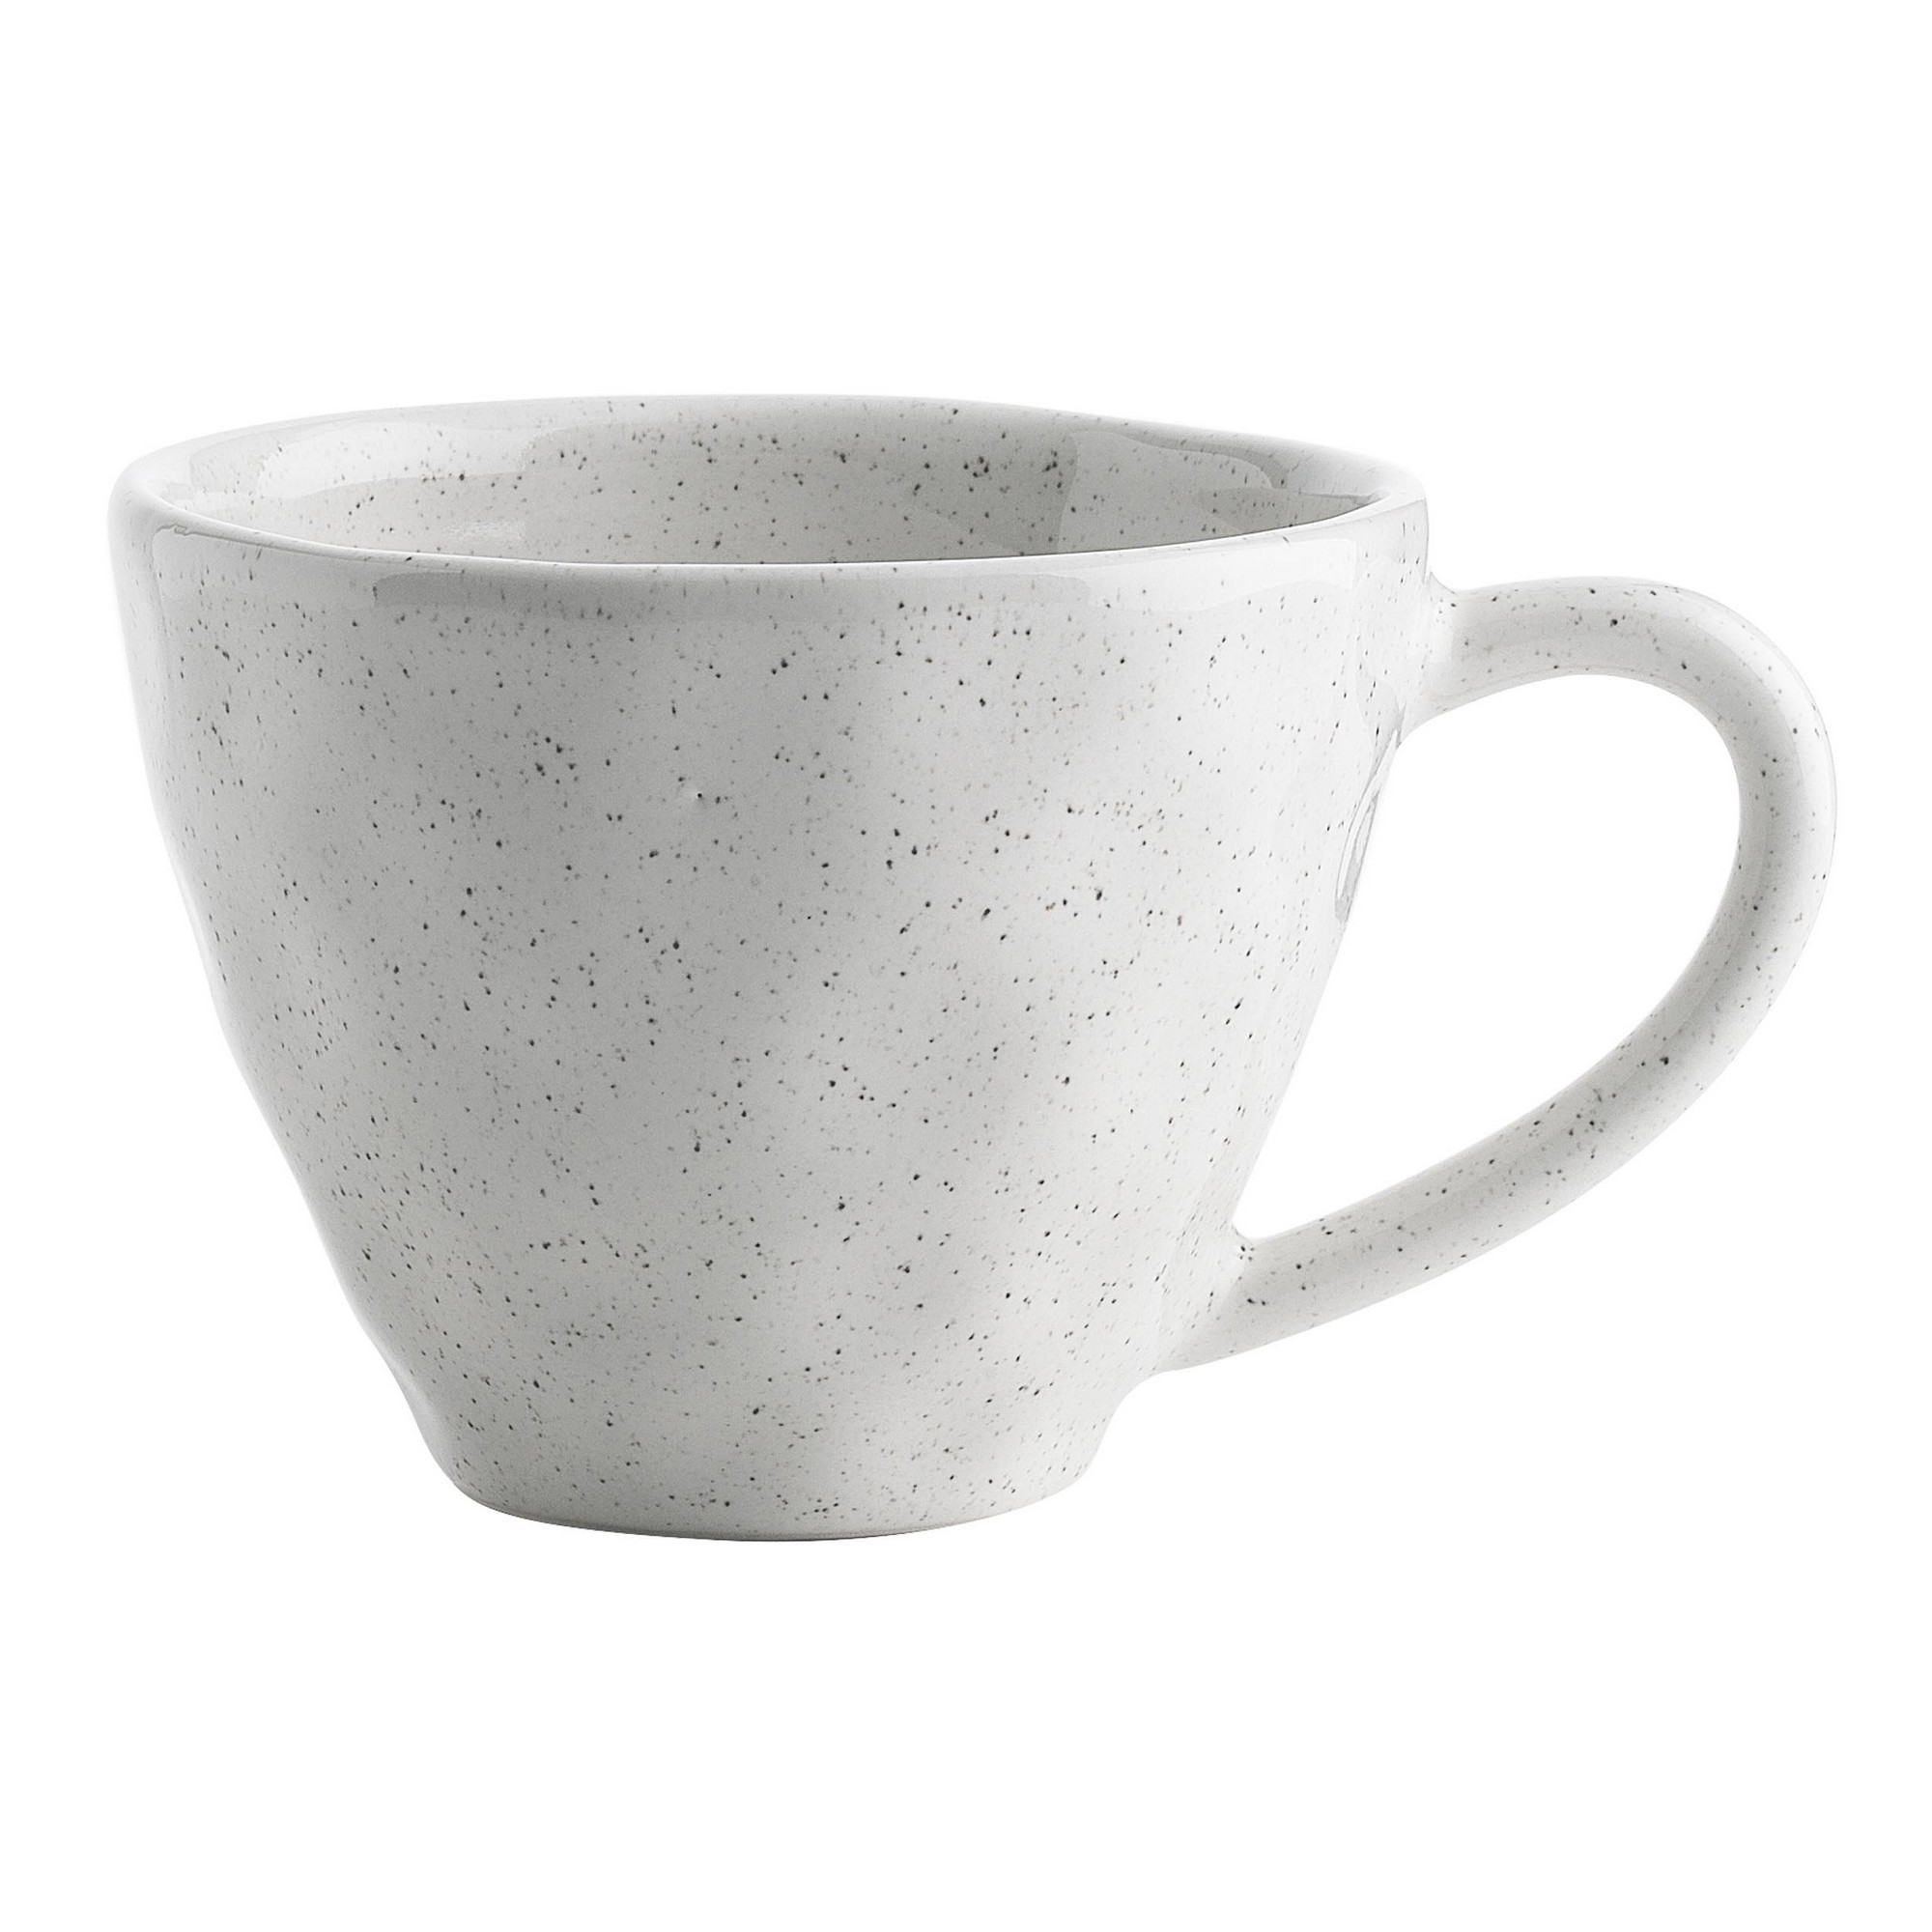 Ecology Speckle Stoneware Mug, Milk